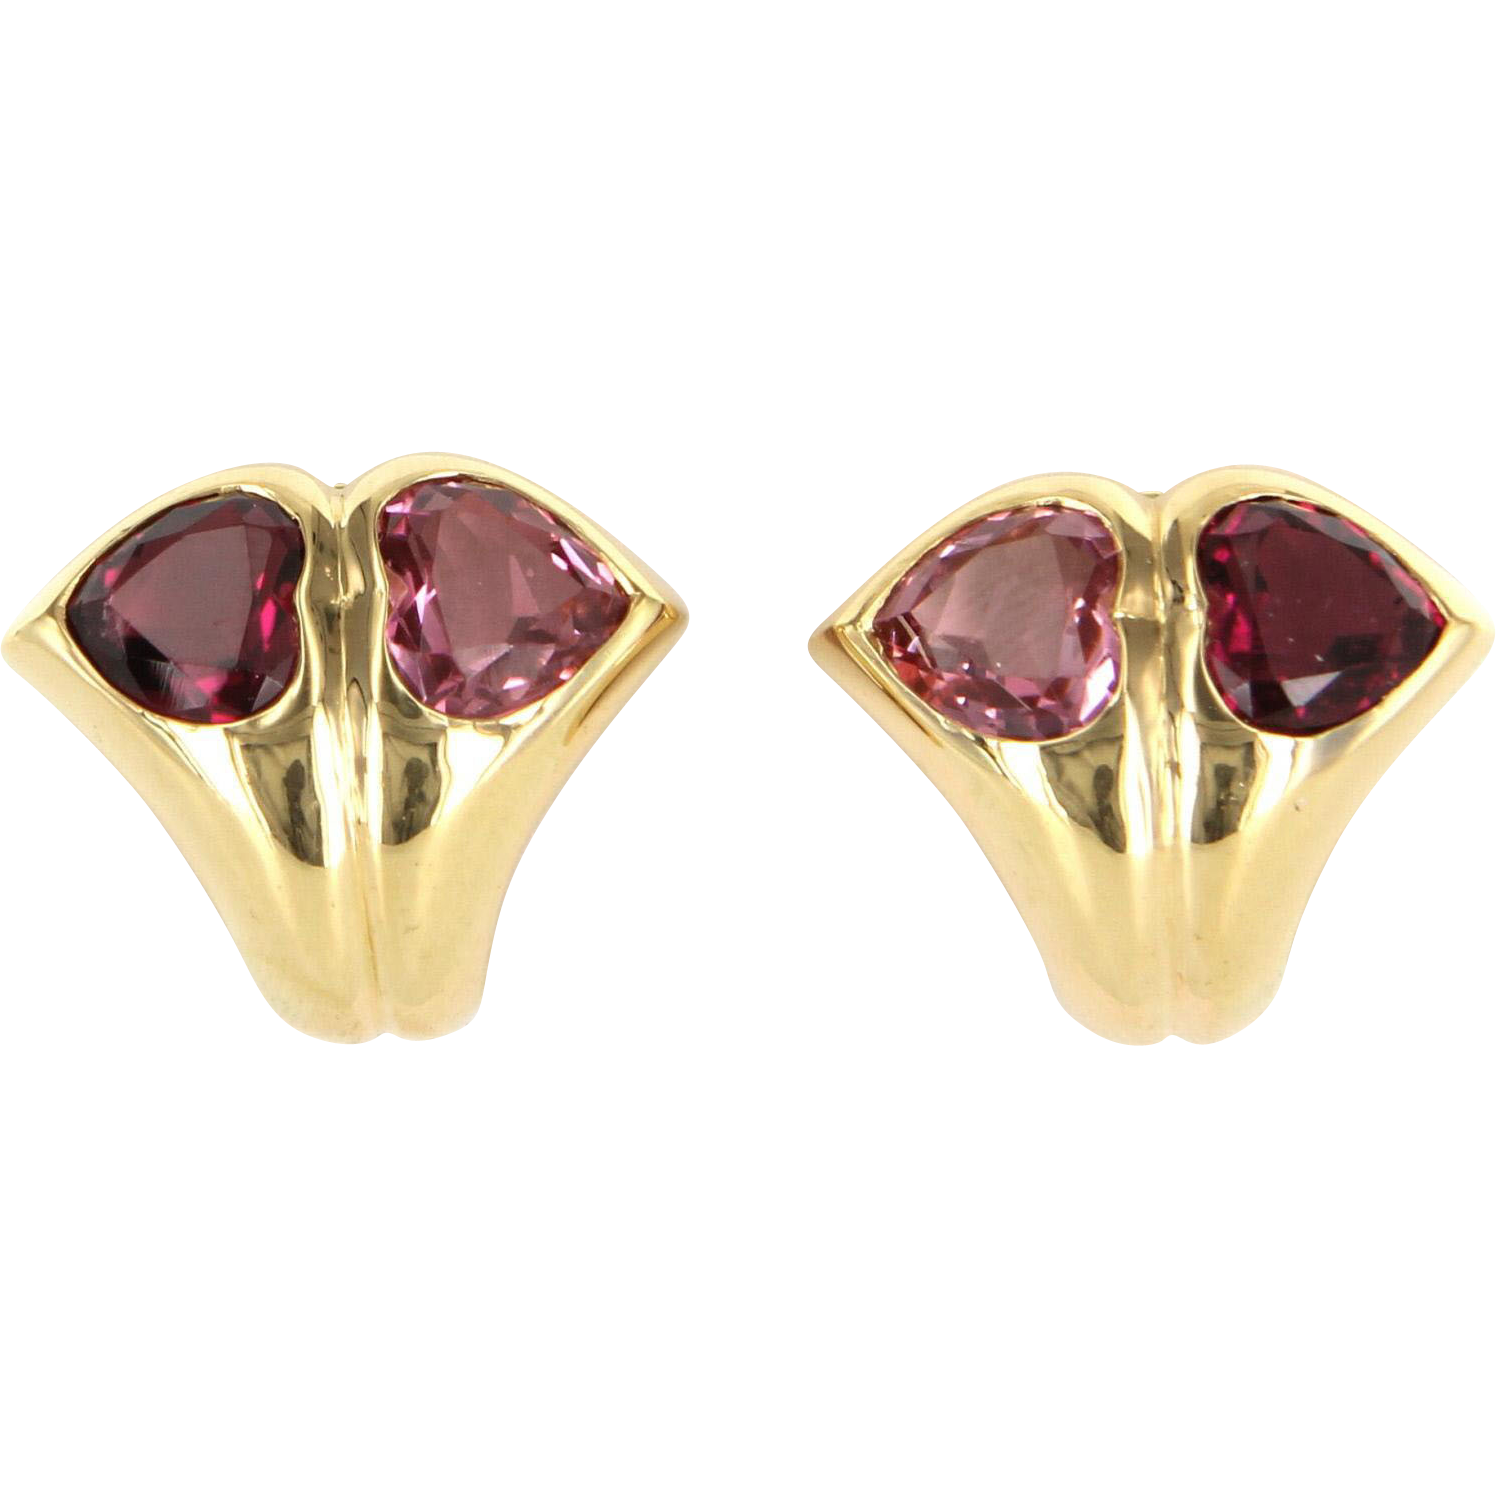 Bulgari Pink Tourmaline Heart Earrings 18 Karat Yellow Gold Signed Jewelry Vintage